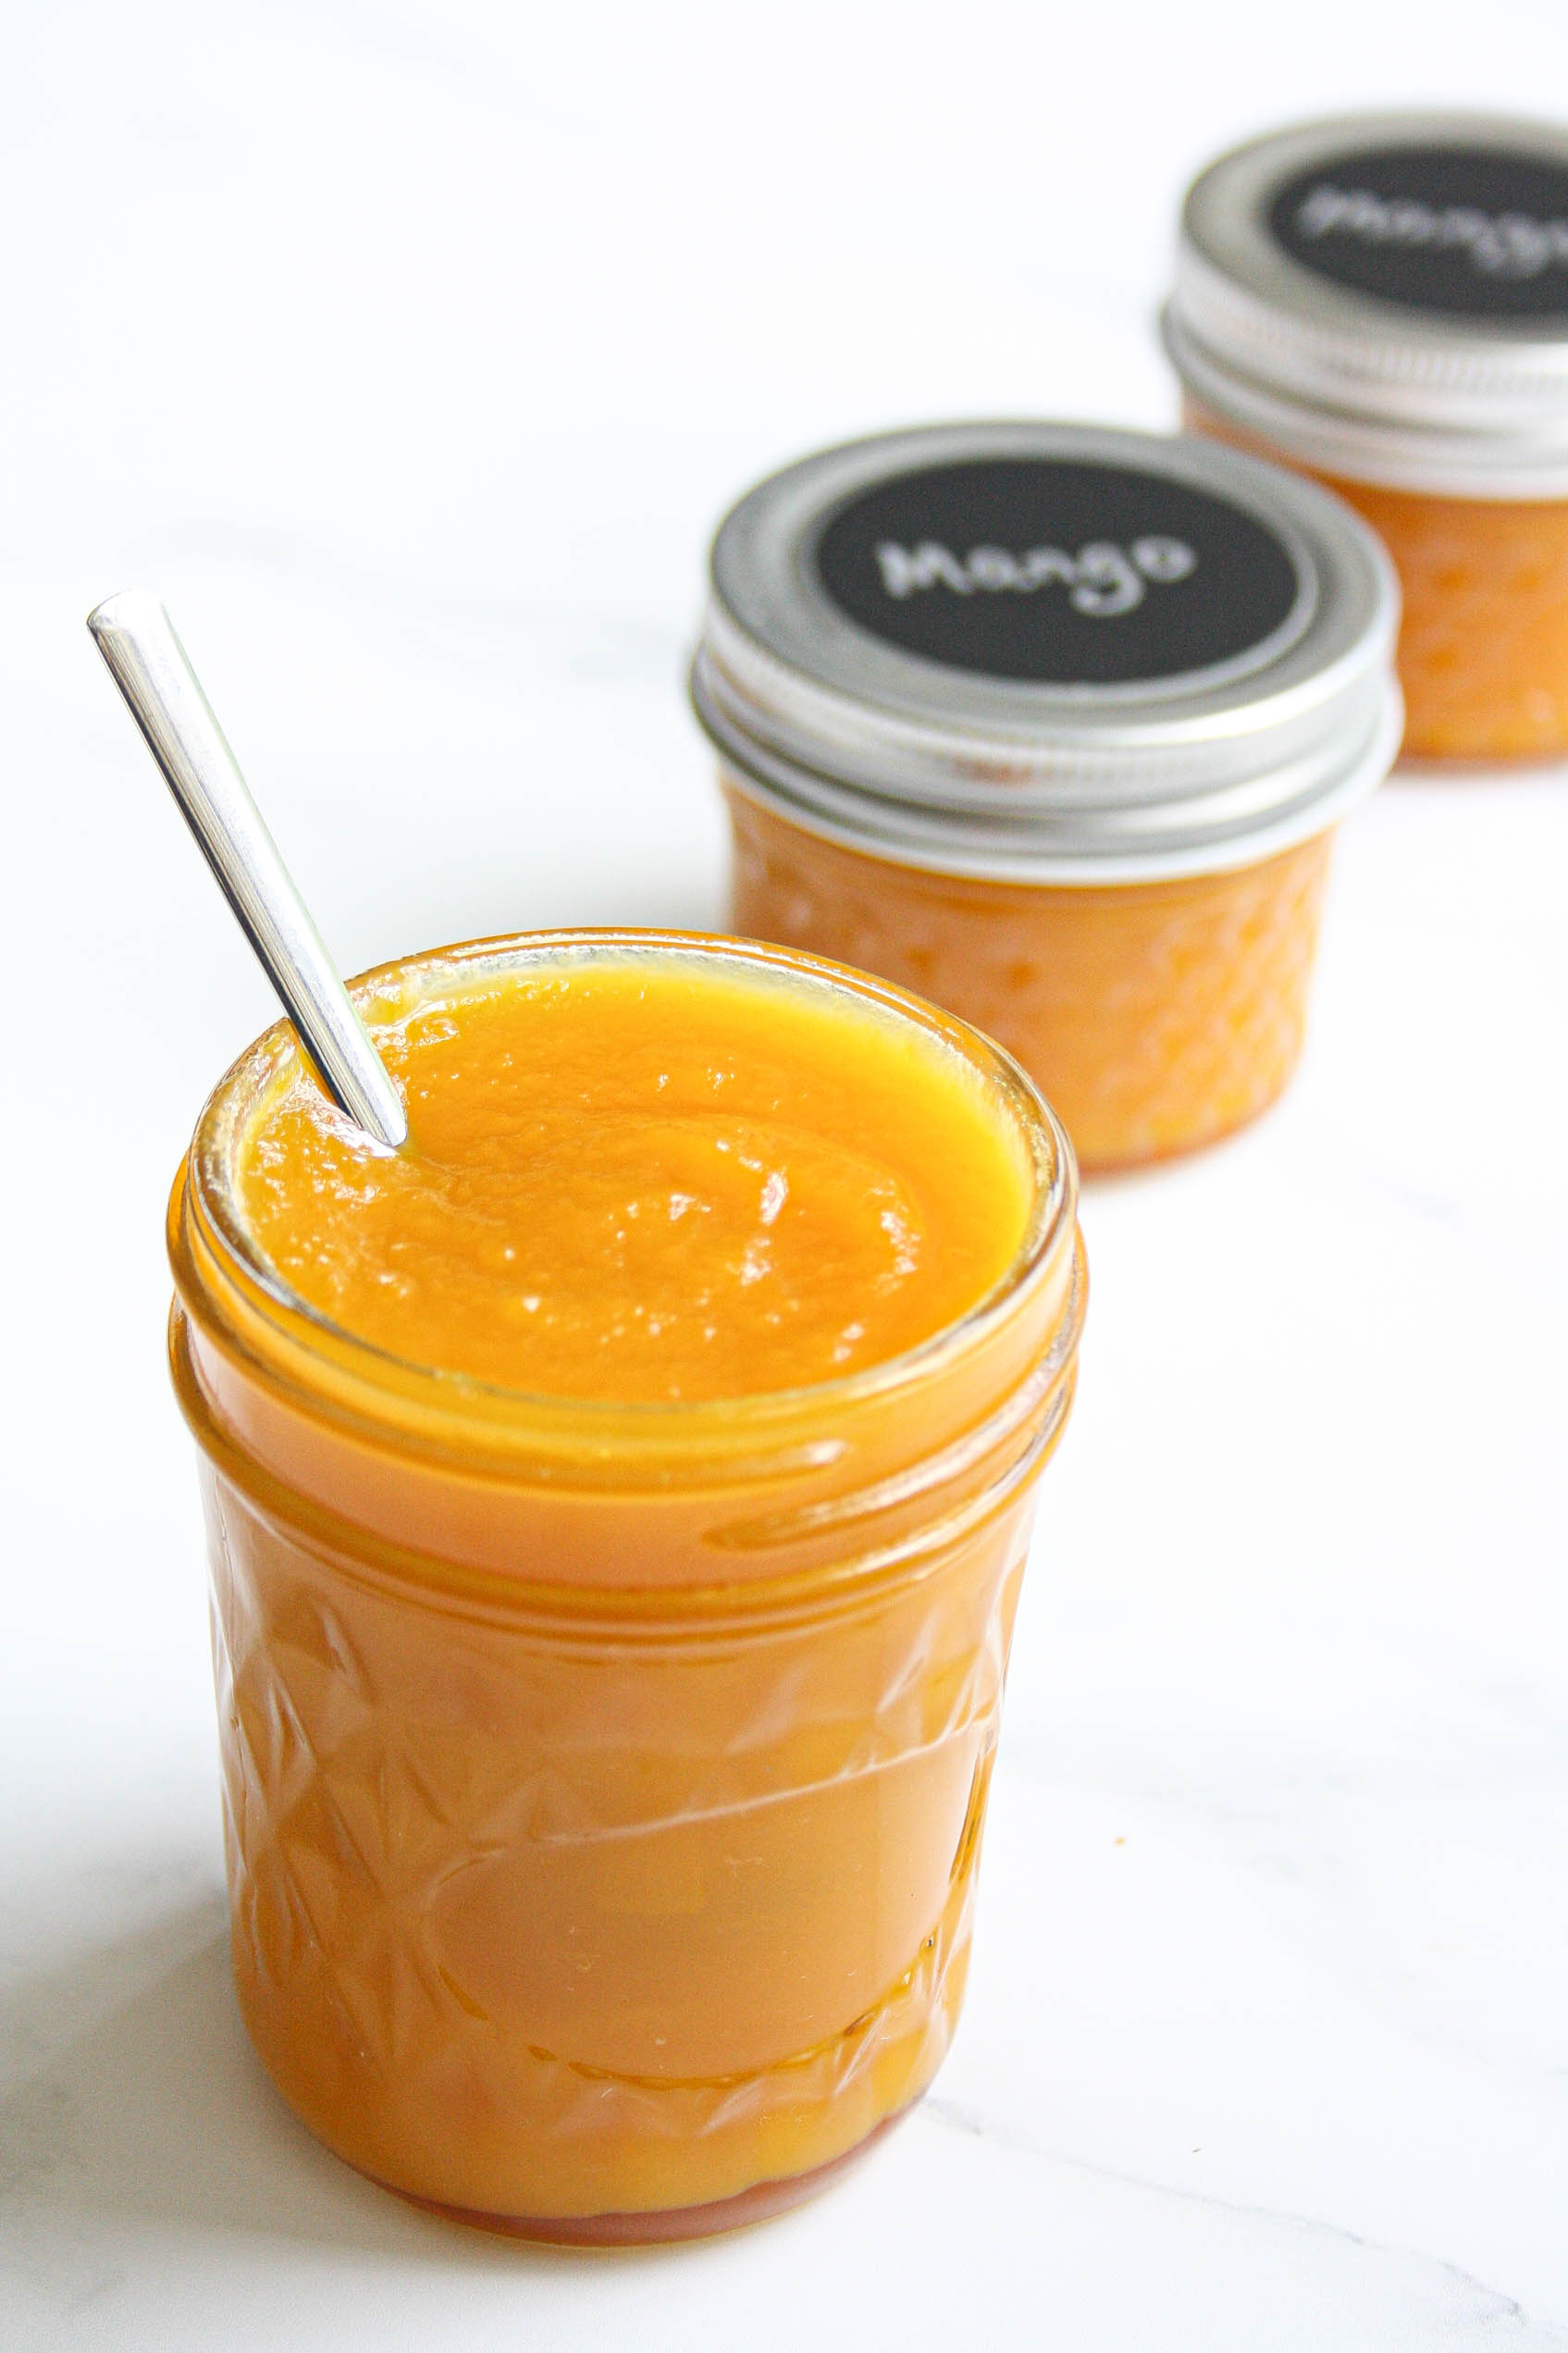 mango jam in a jar with a spoon in